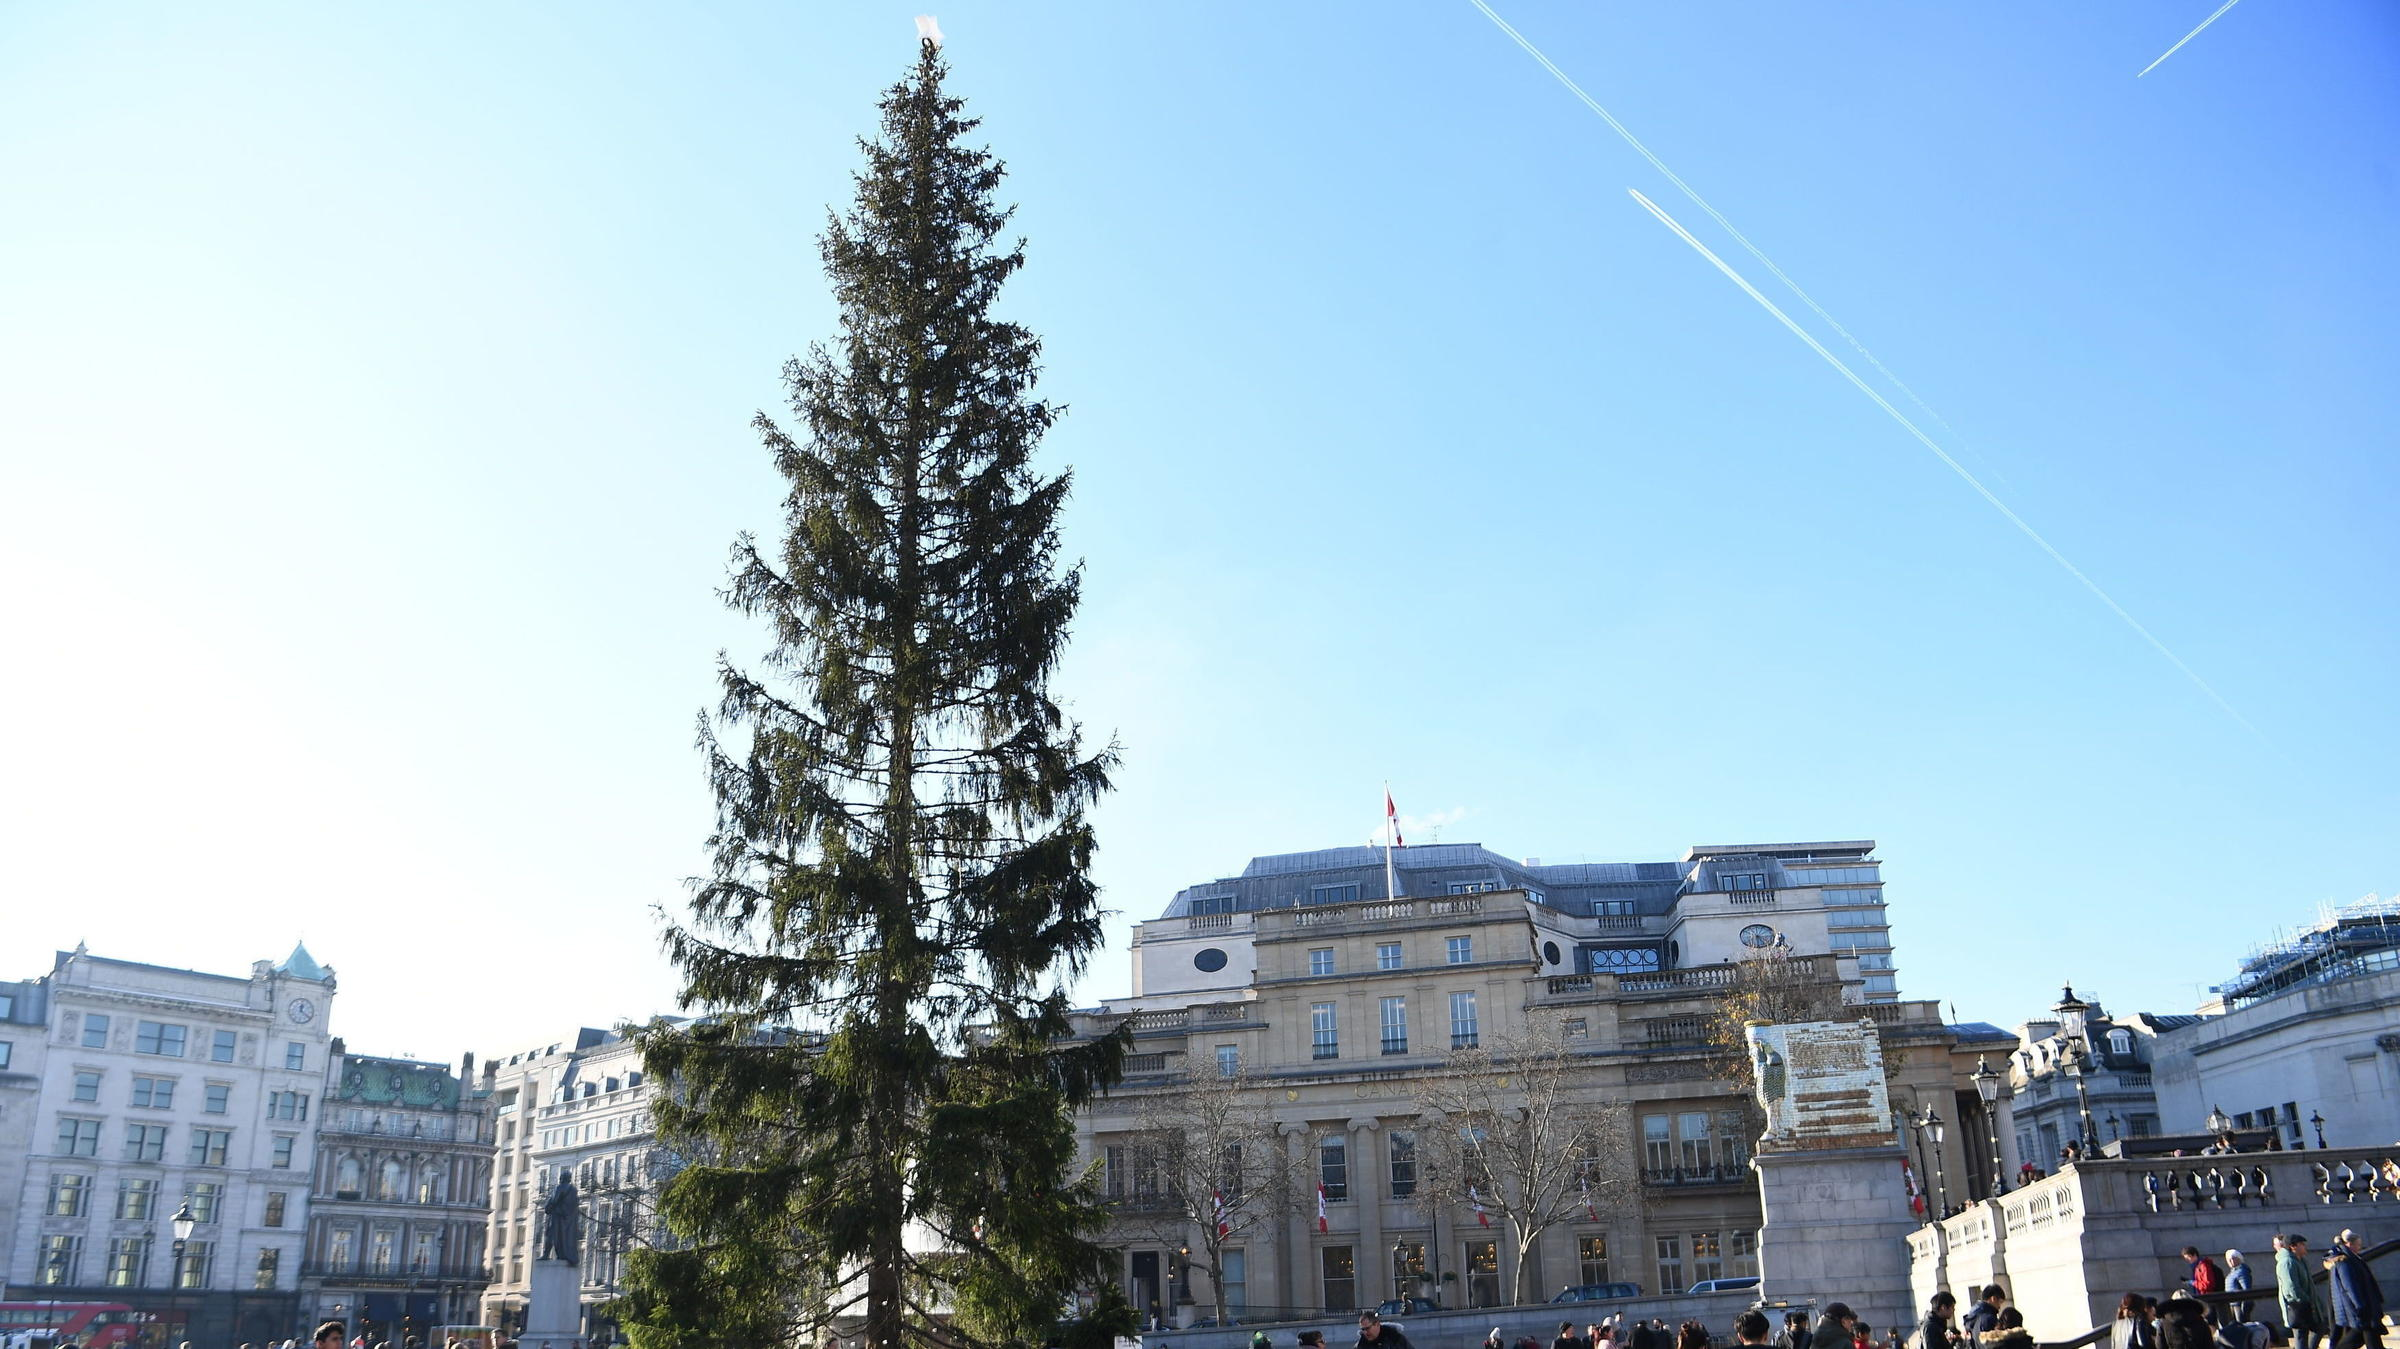 London's 'most ridiculed' Christmas tree is switched on in Trafalgar Square